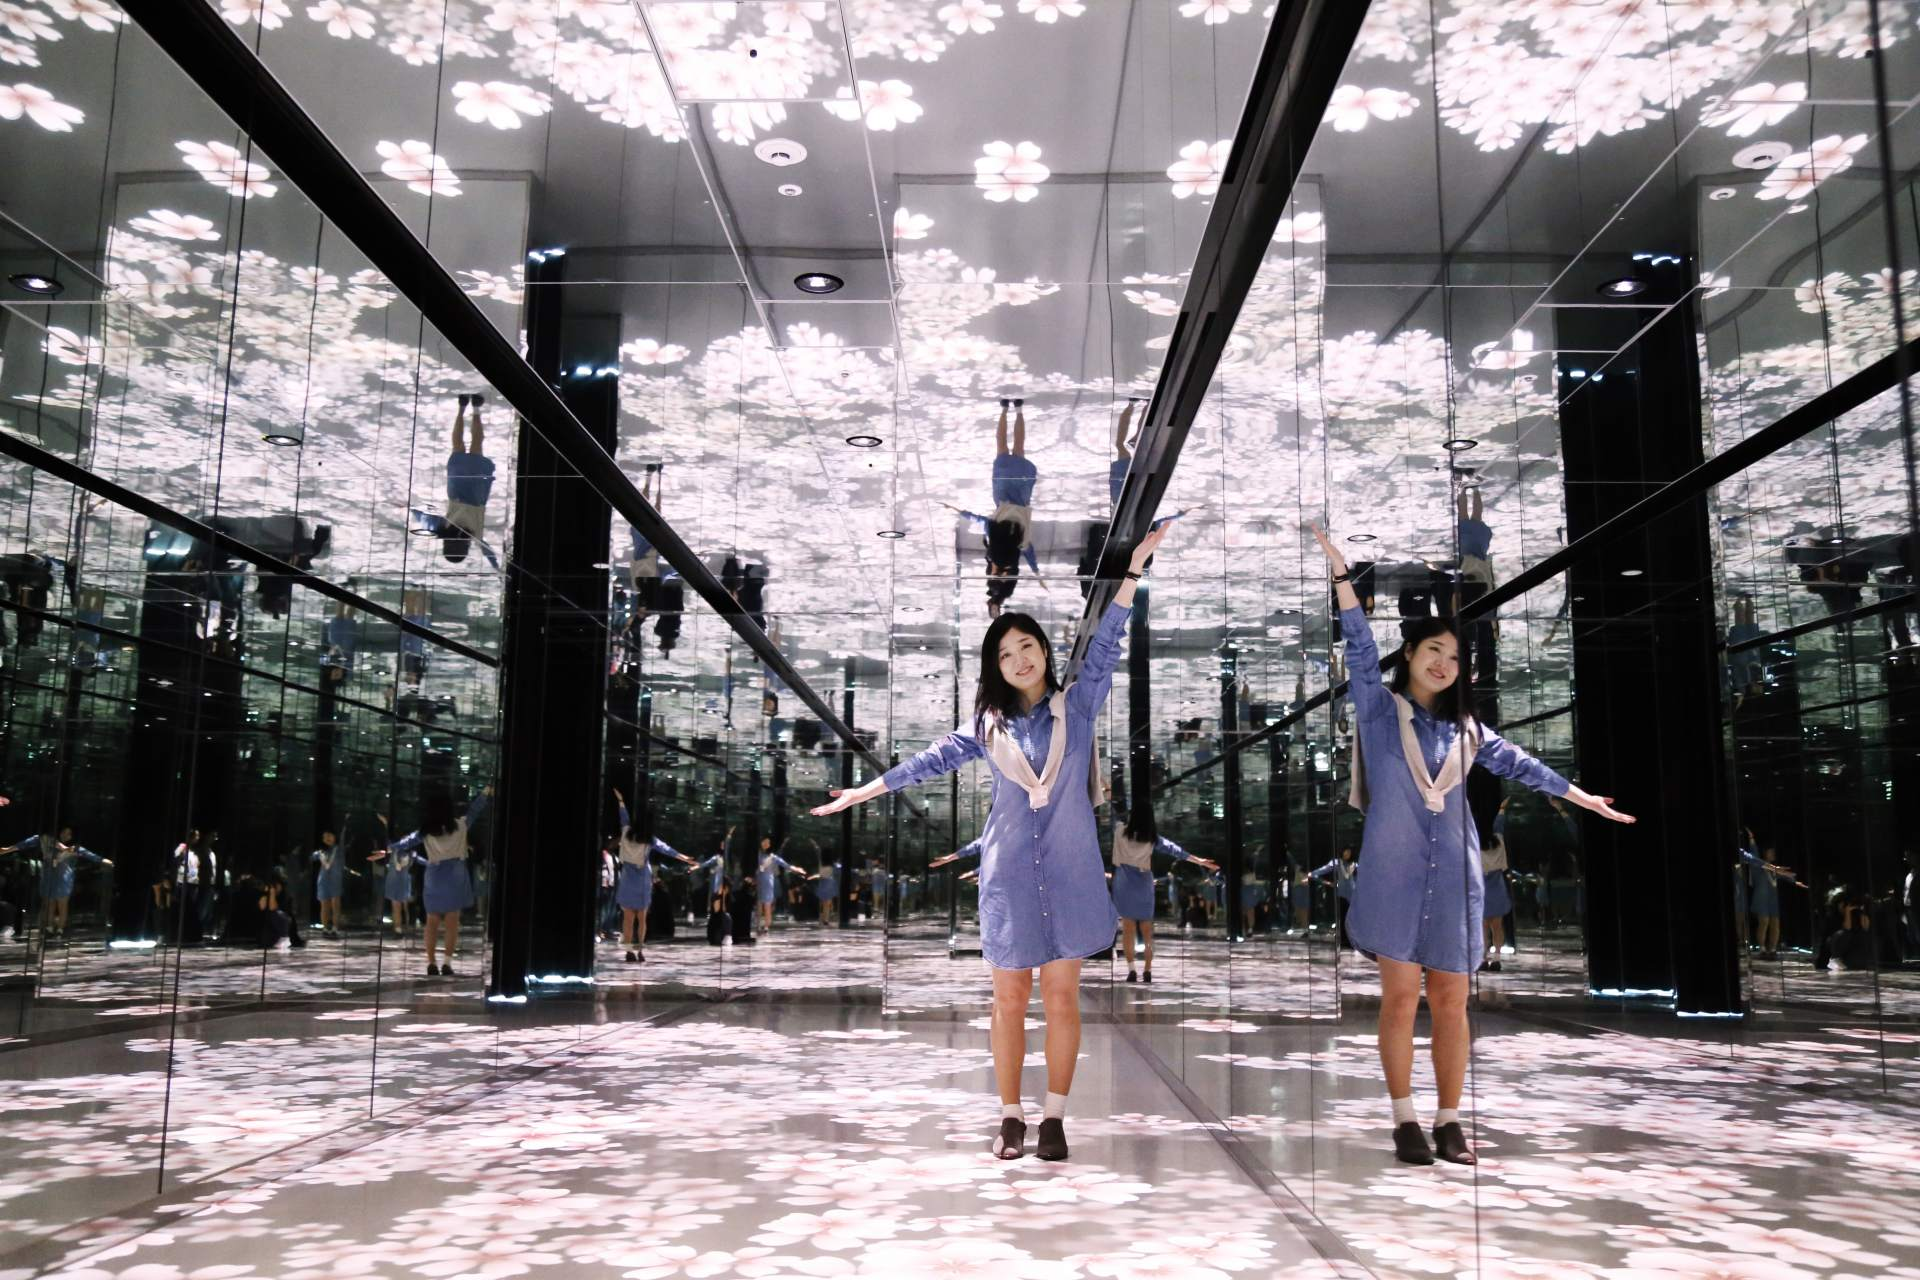 Tokyo's latest must-see attractions